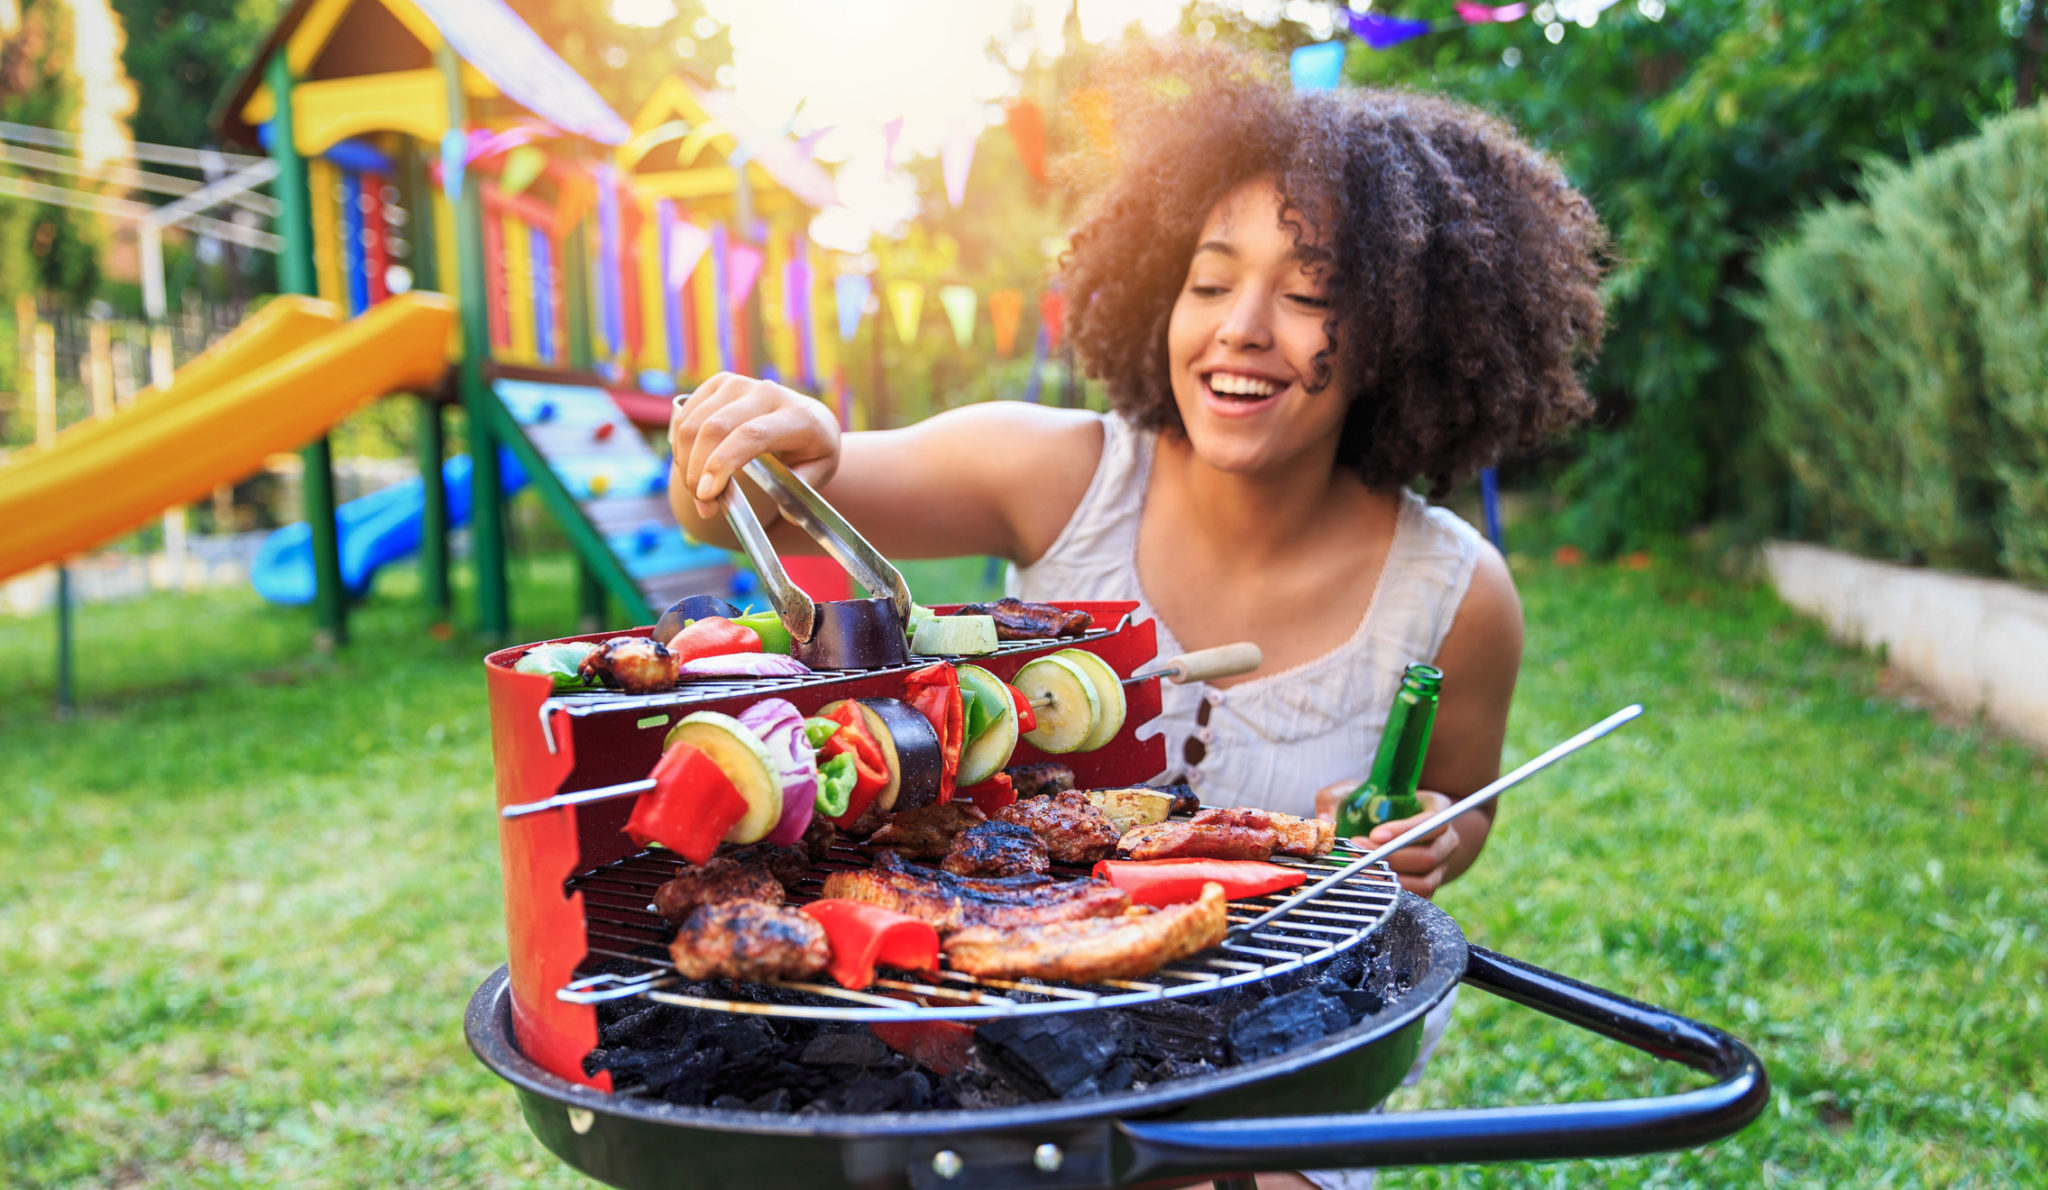 Smiling woman preparing barbecue at backyard